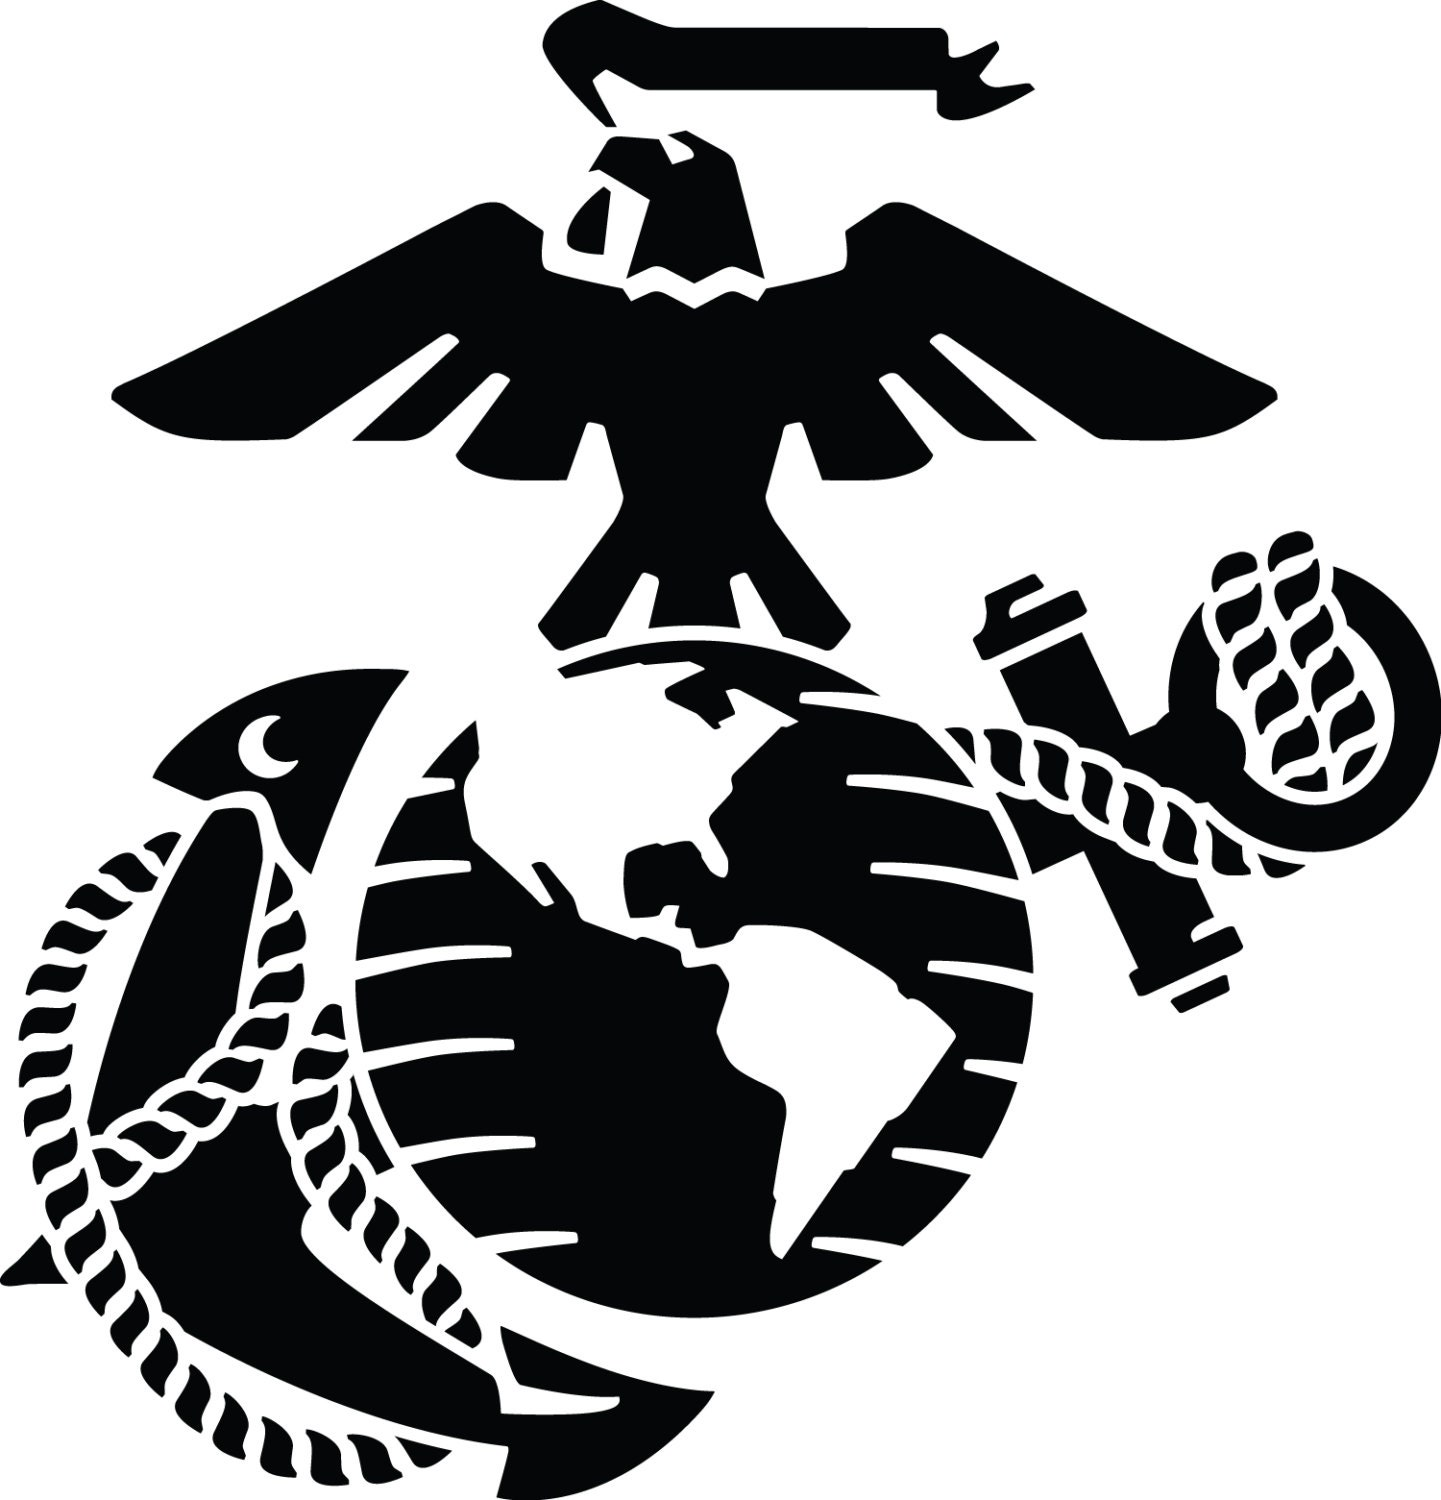 Eagle globe and anchor 6 inches usmc vinyl car decal window sticker